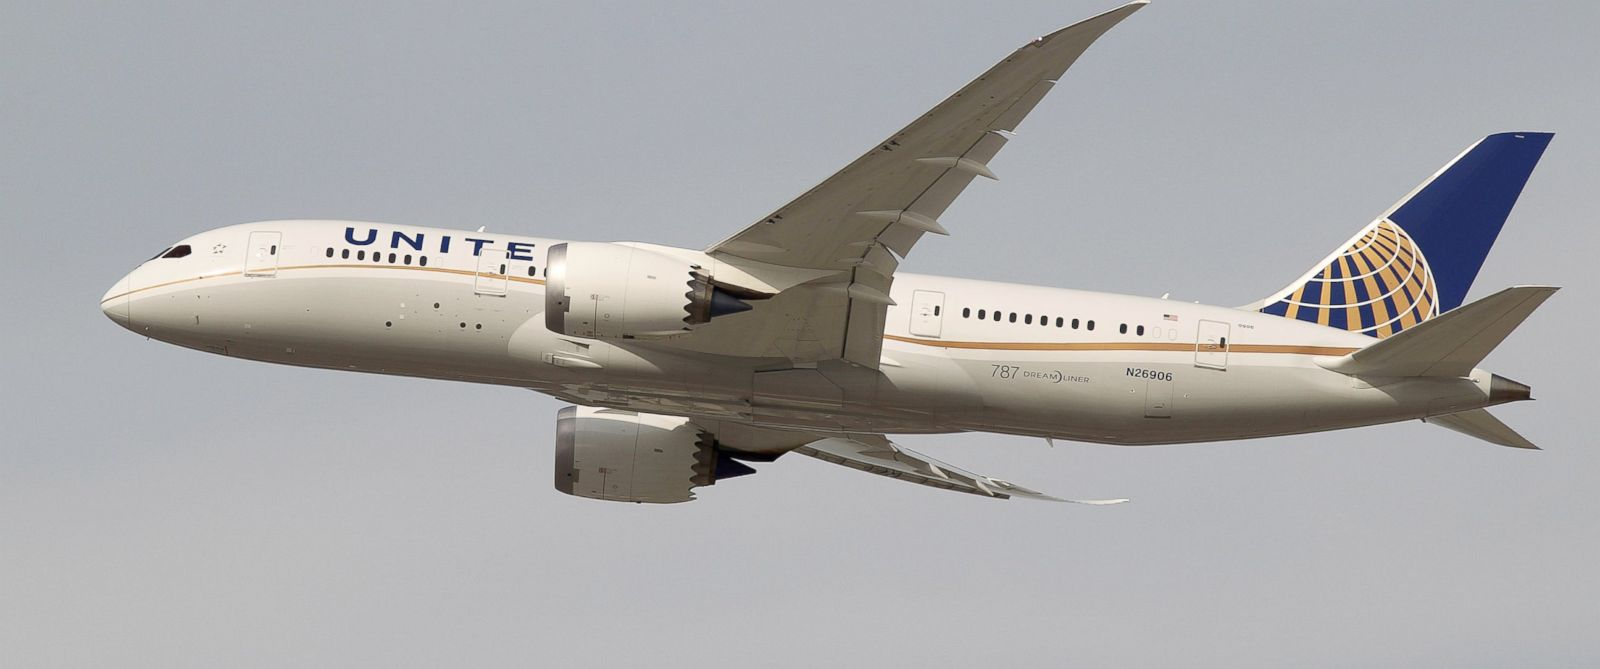 PHOTO: In this file photo, a United Airlines Boeing 787 Dreamliner takes off at Los Angeles International Airport, January 9, 2013 in Los Angeles, Calif.